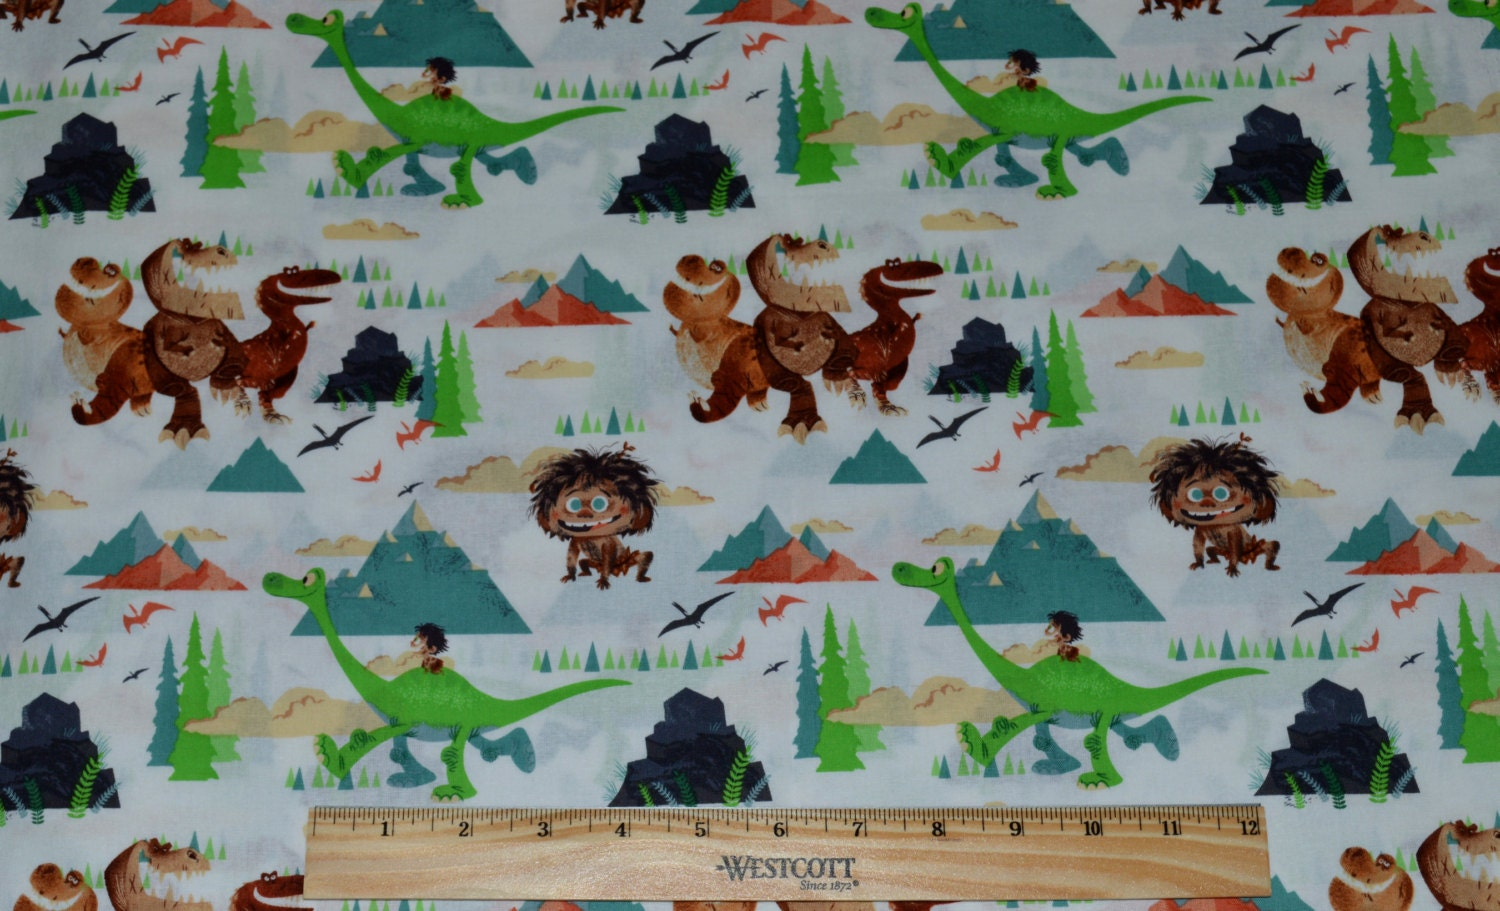 Good dinosaurs fabric by the half yard for quilting for Dinosaur fabric